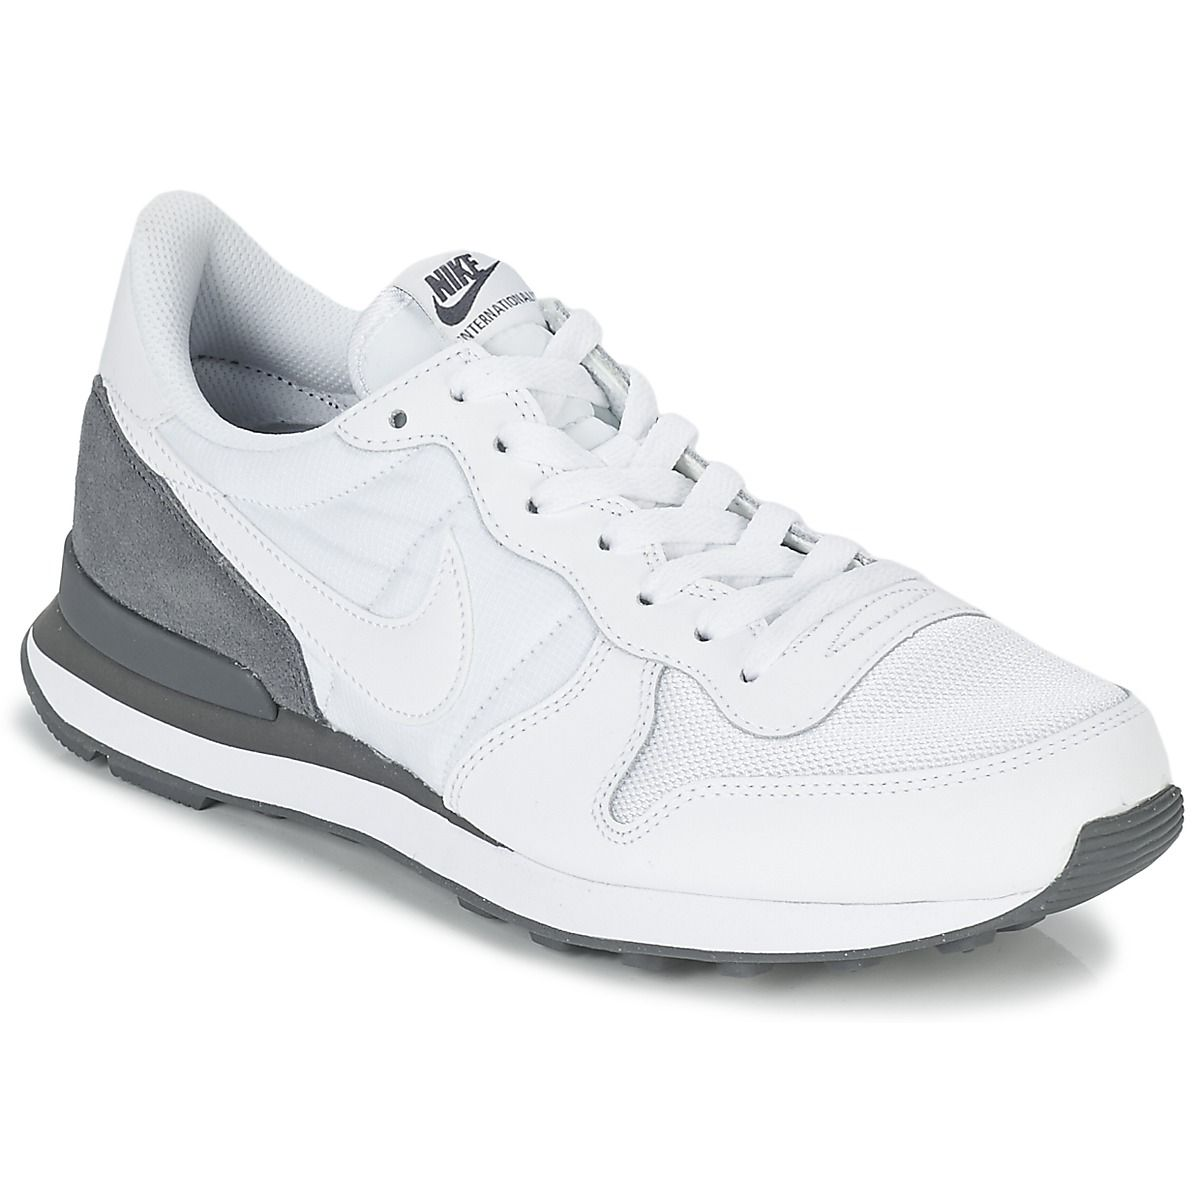 INTERNATIONALIST - CHAUSSURES - Sneakers & Tennis bassesNike